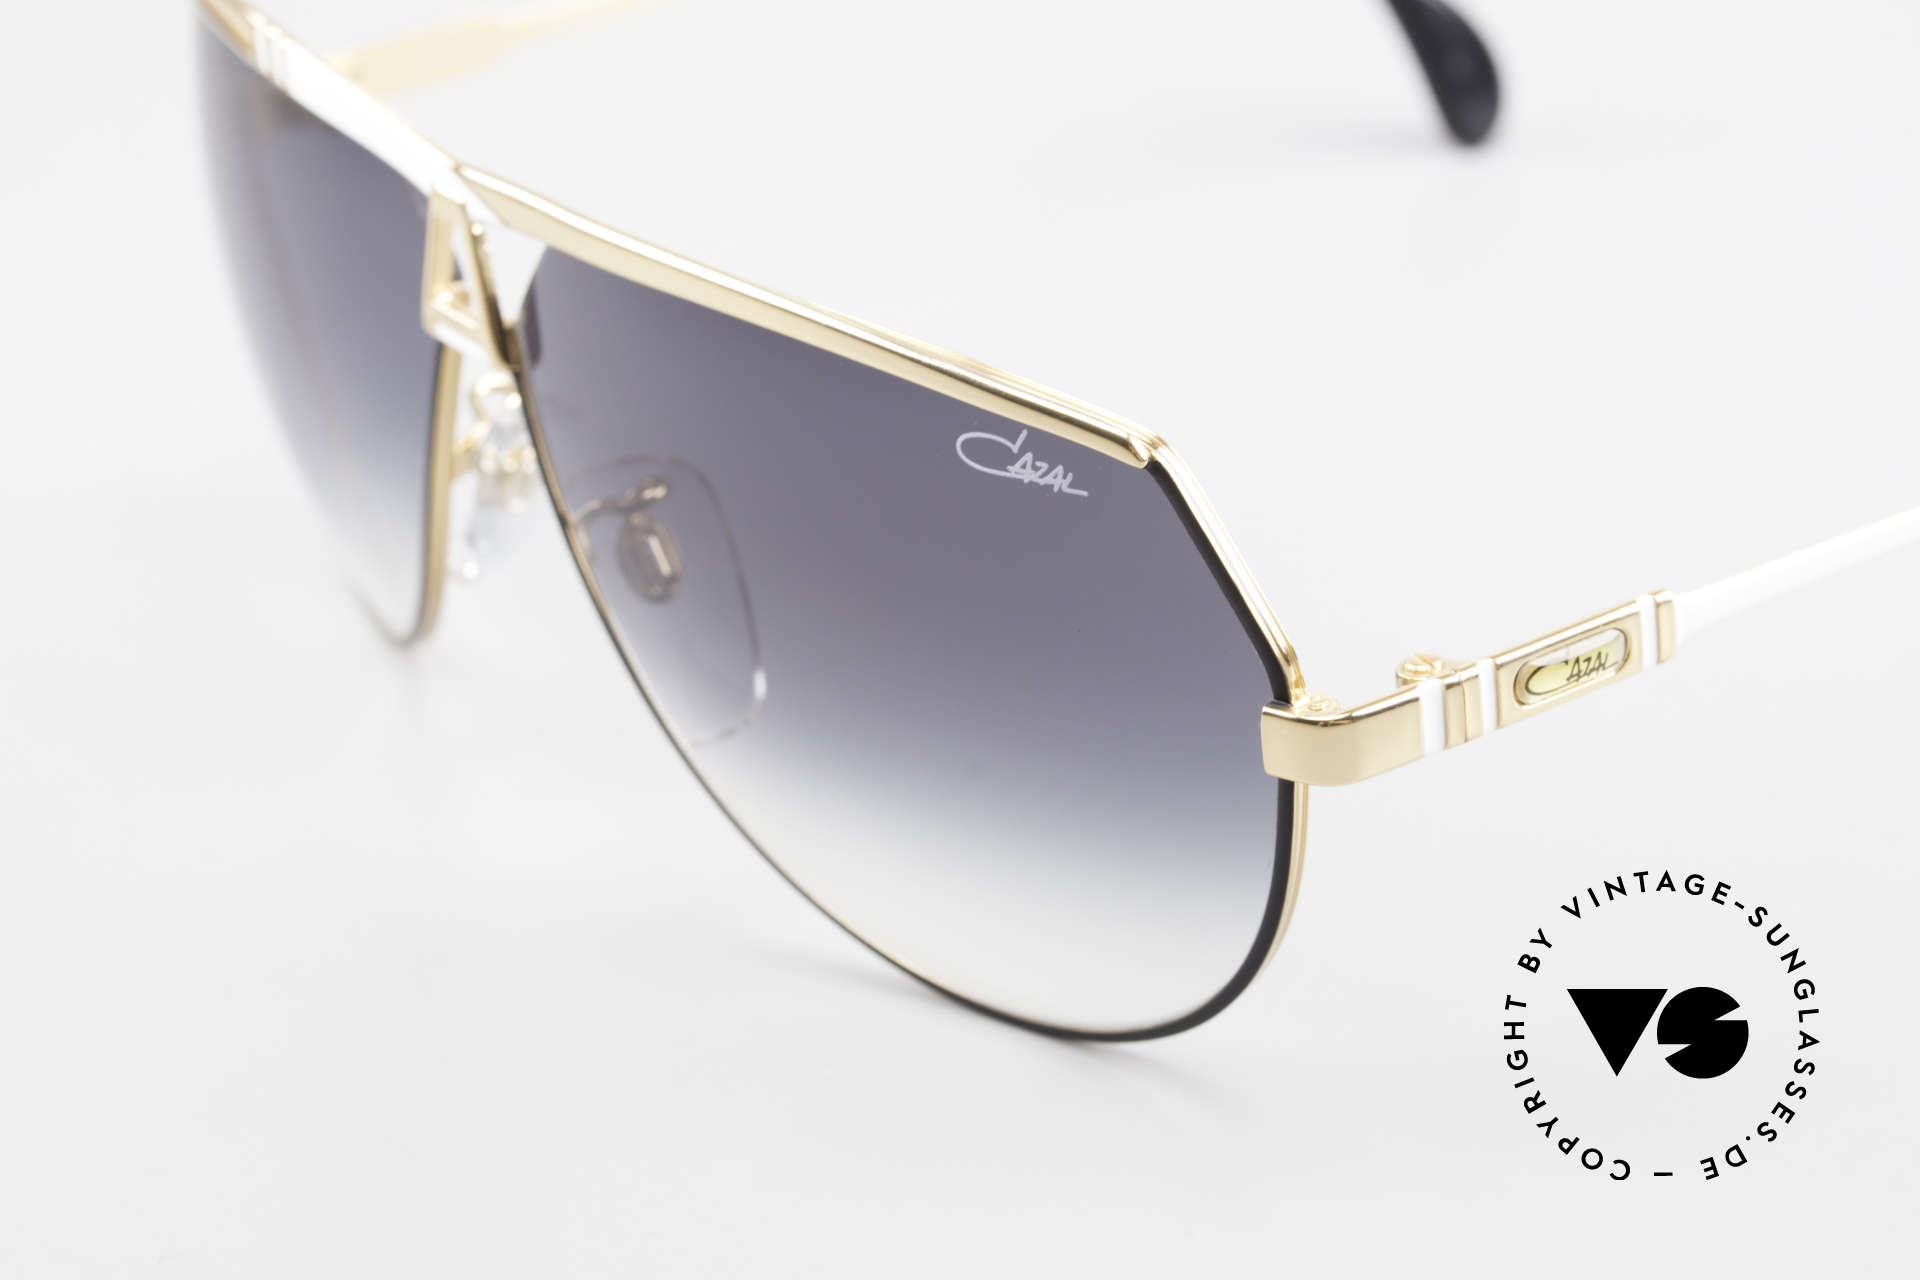 Cazal 954 Rare Vintage Designer Shades, unworn (like all our legendary VINTAGE Cazals), Made for Men and Women